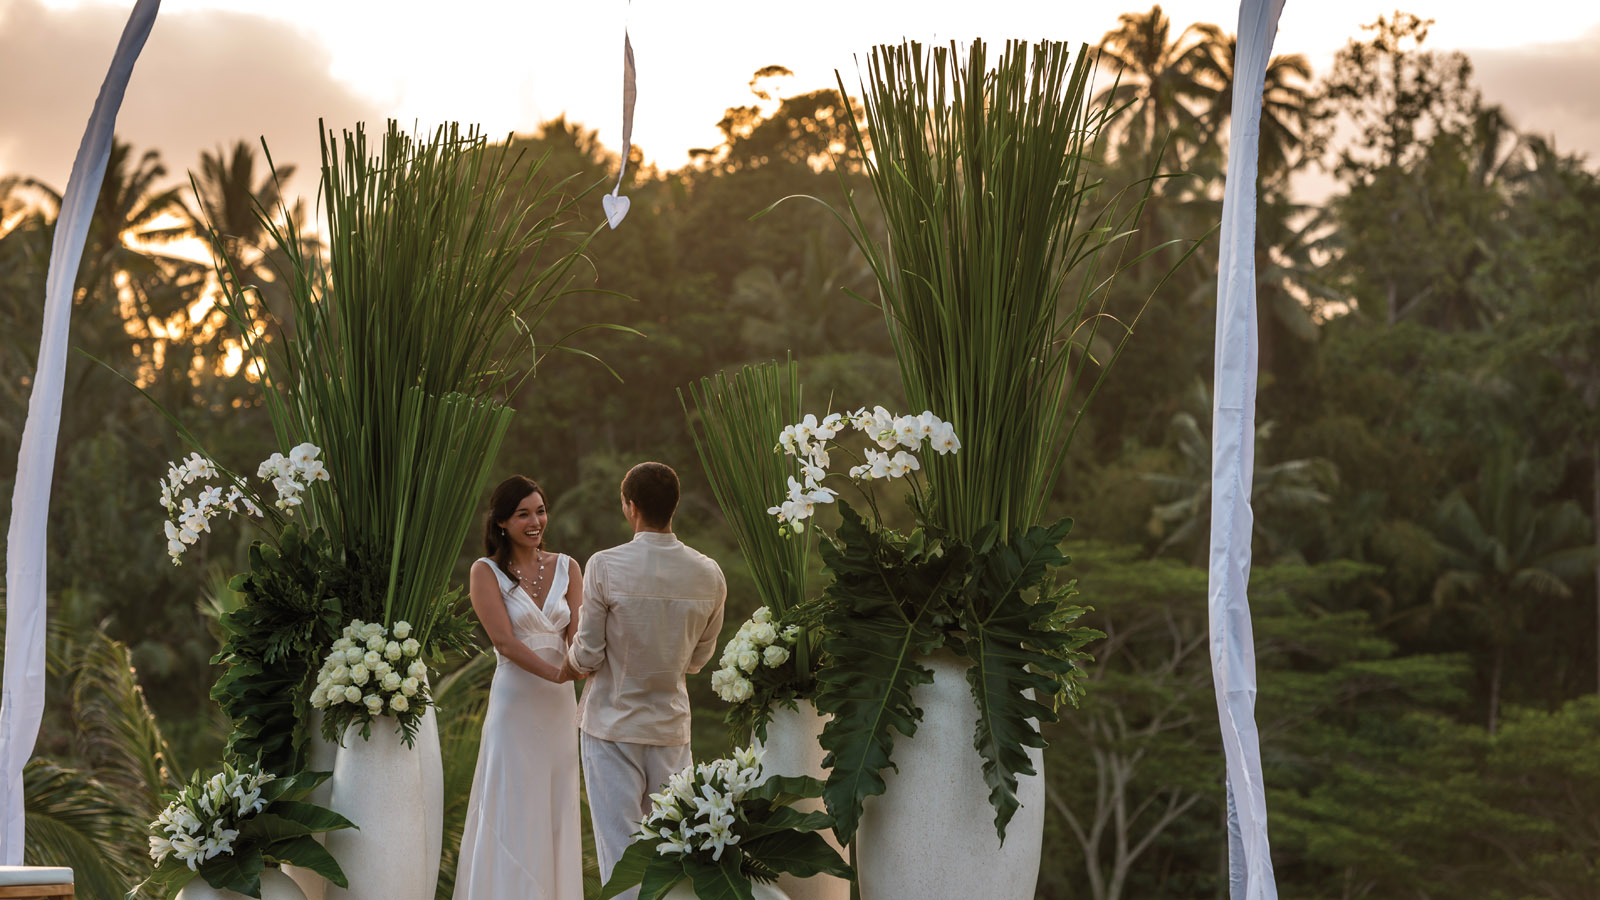 Bali Wedding Packages From Four Seasons Resort Bali at Sayan